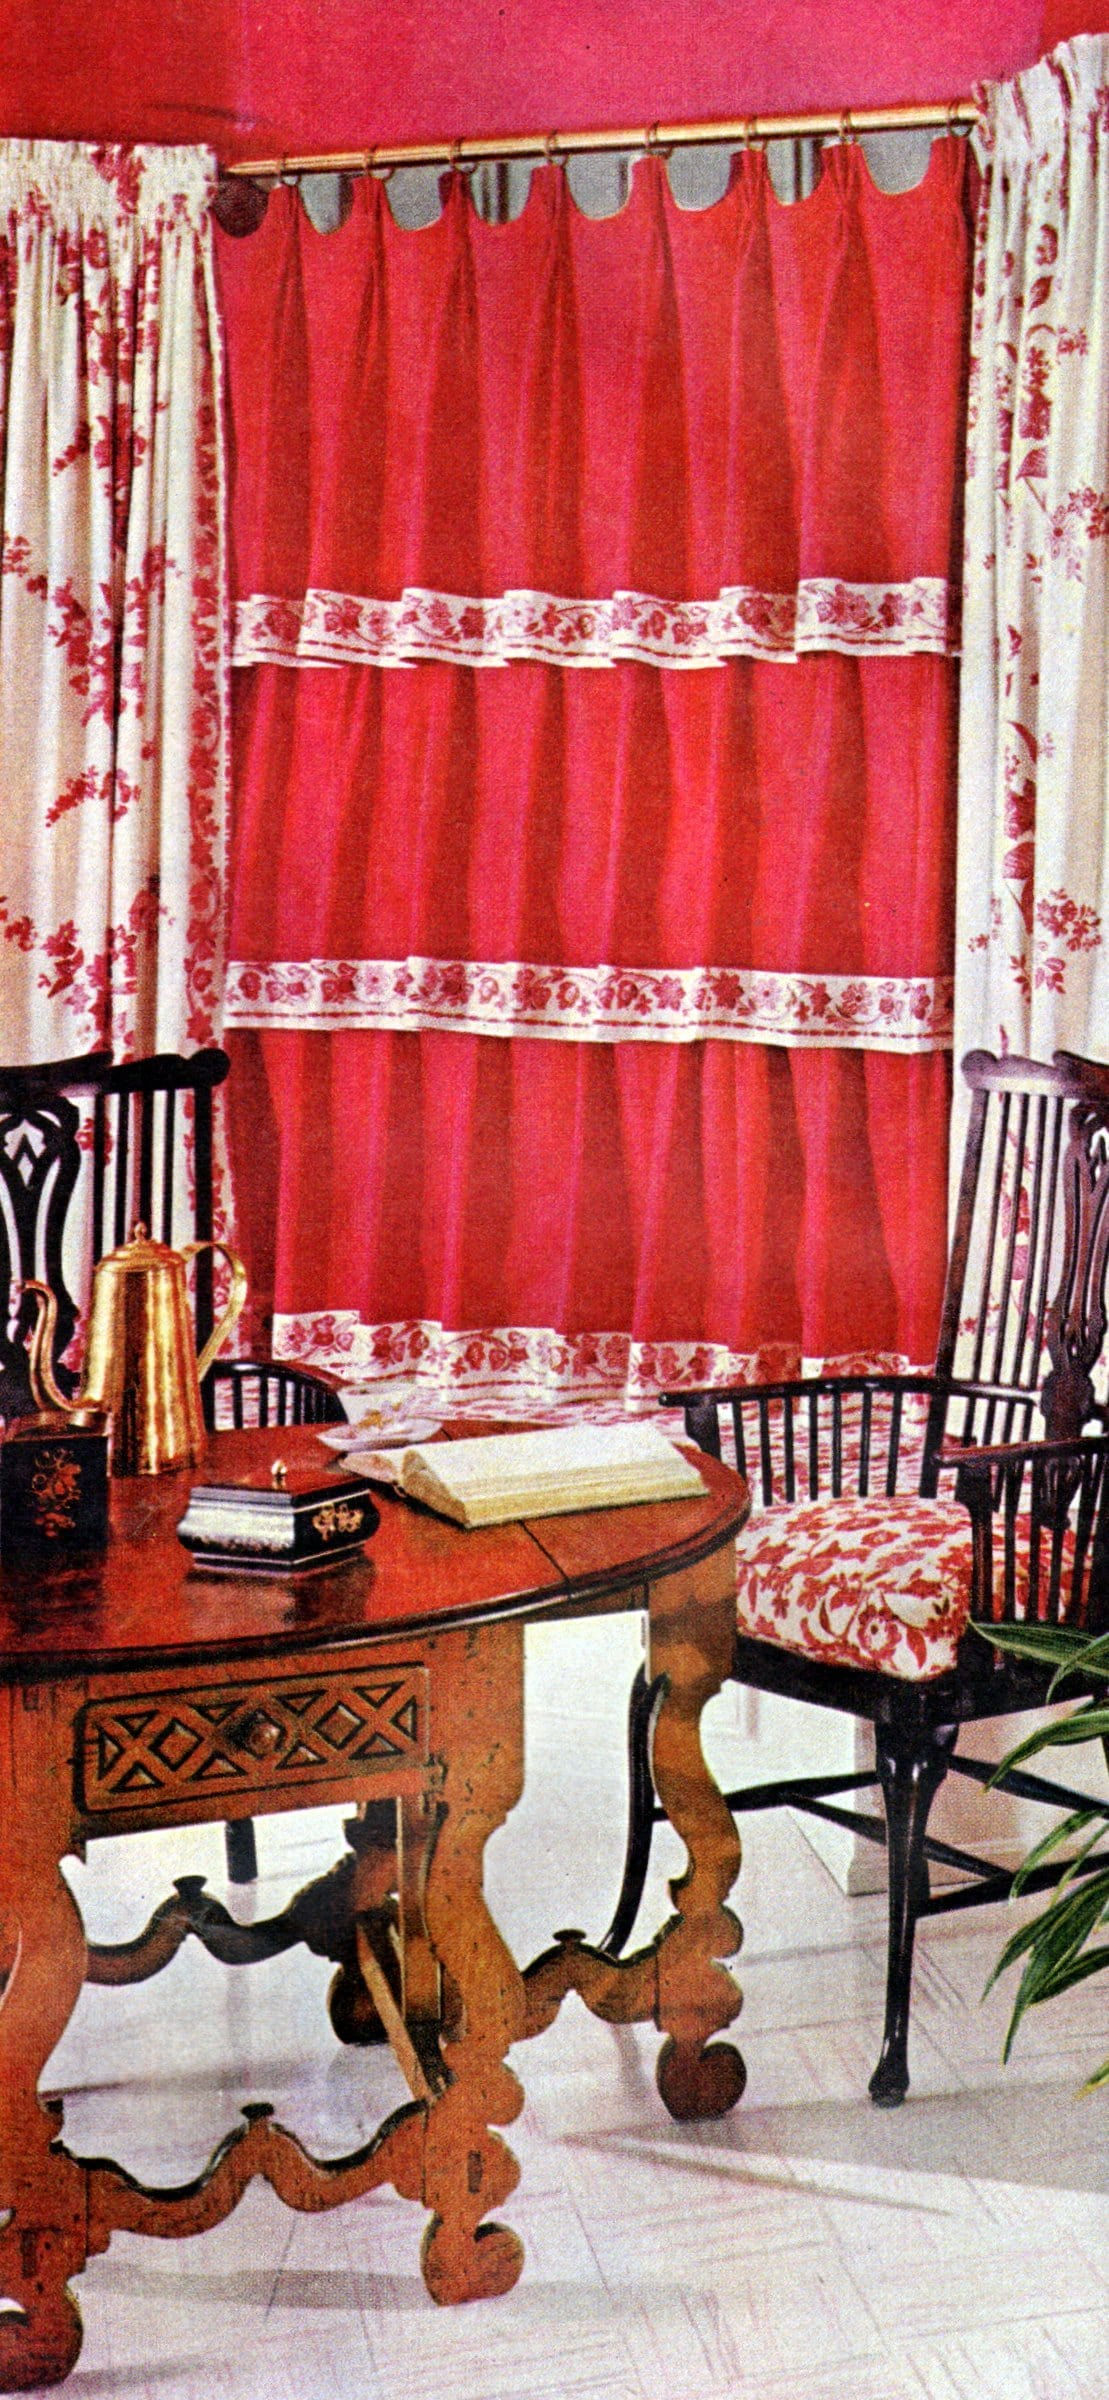 Retro home decorating - Use a single color boldly - Red (2)